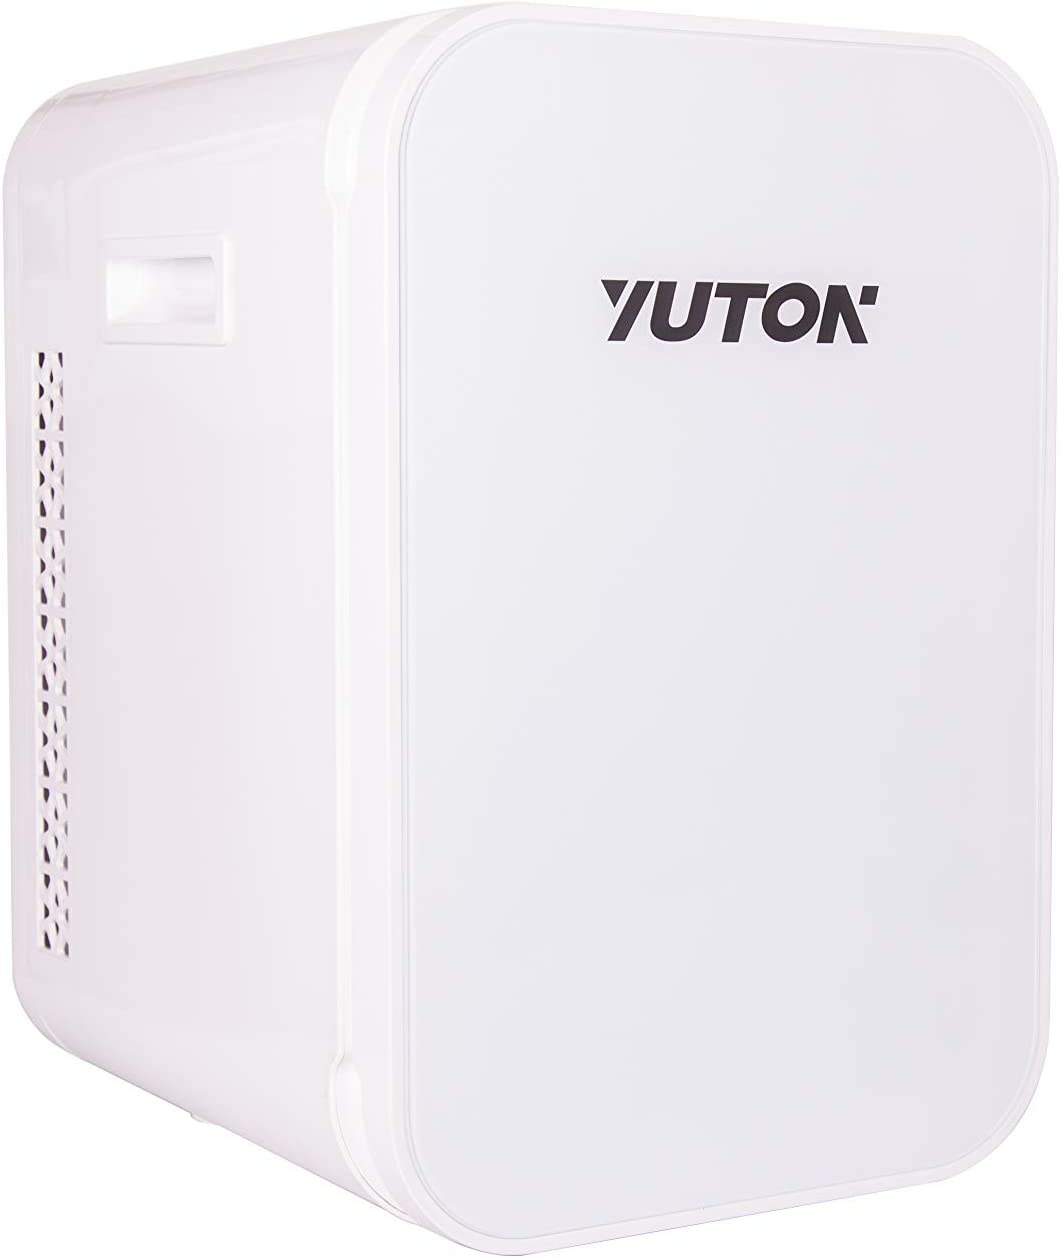 YUTON White Mini Portable Fridge 22Liter Skincare Fridge - Thermoelectirc Cooler and Warmer-Heater for Car, Office, Bedroom, Cosmetics, Meducations, Breastmilk with 110V AC/ 12V DC